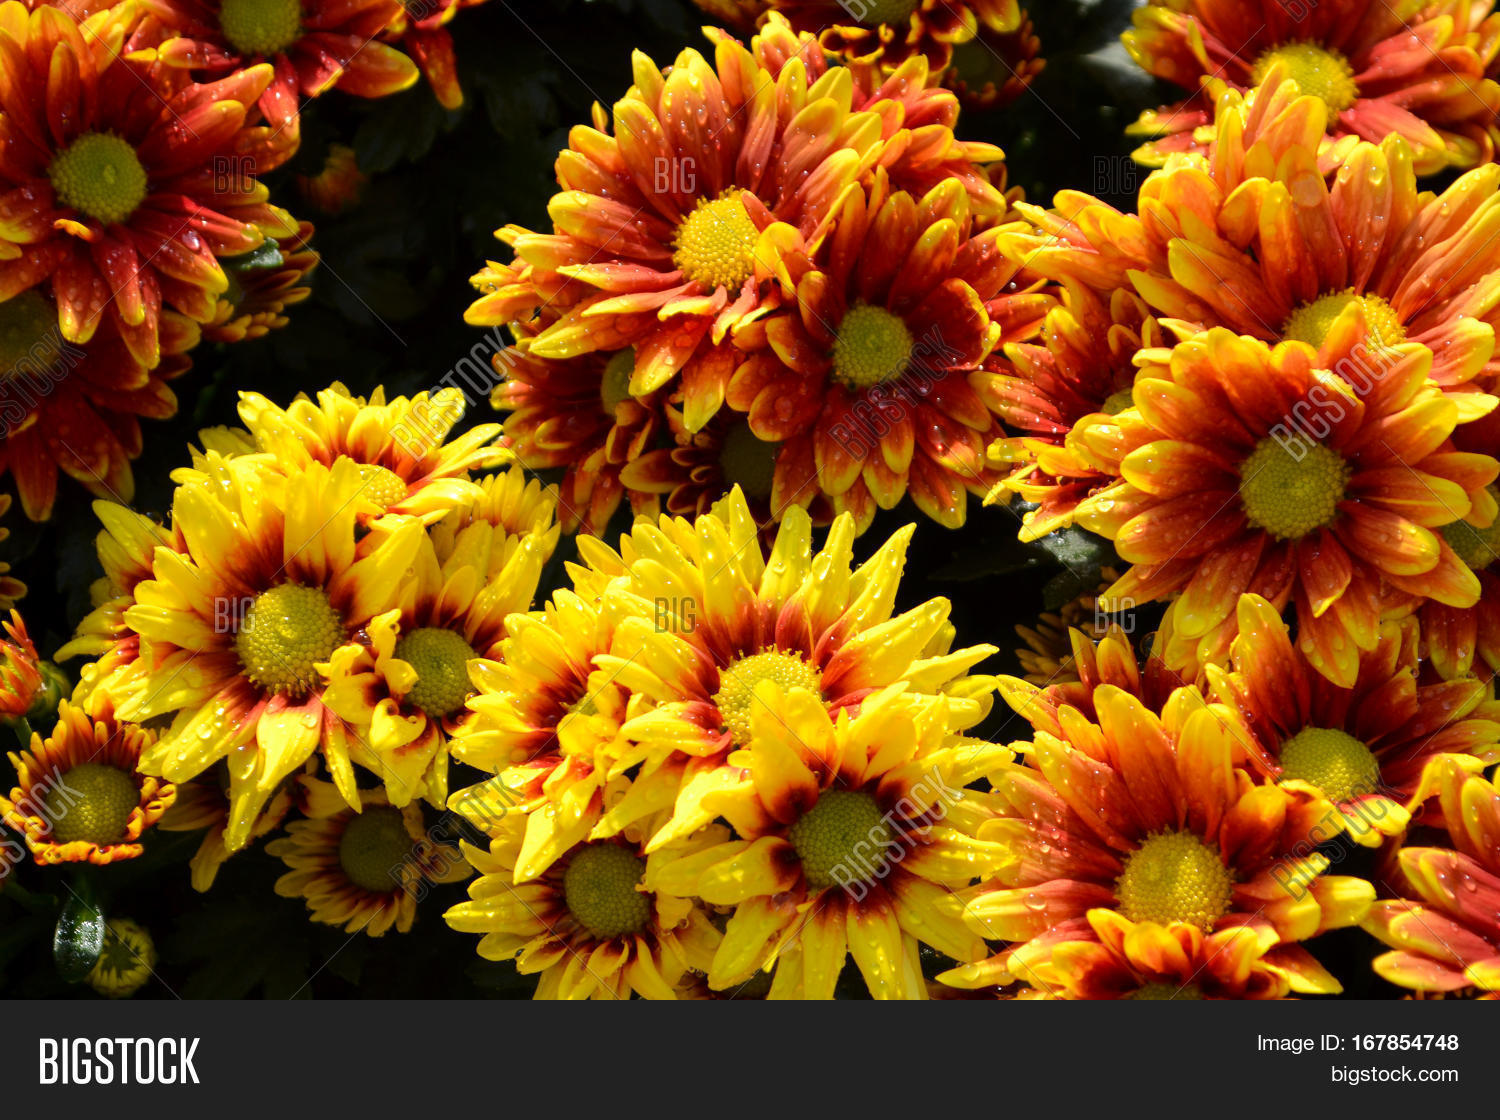 Flower called orange flowers healthy these are orange and yellow flowers and has yellow pollen called chrysanthemum or florist s mun or these orange yellow image photo free trial bigstock mightylinksfo